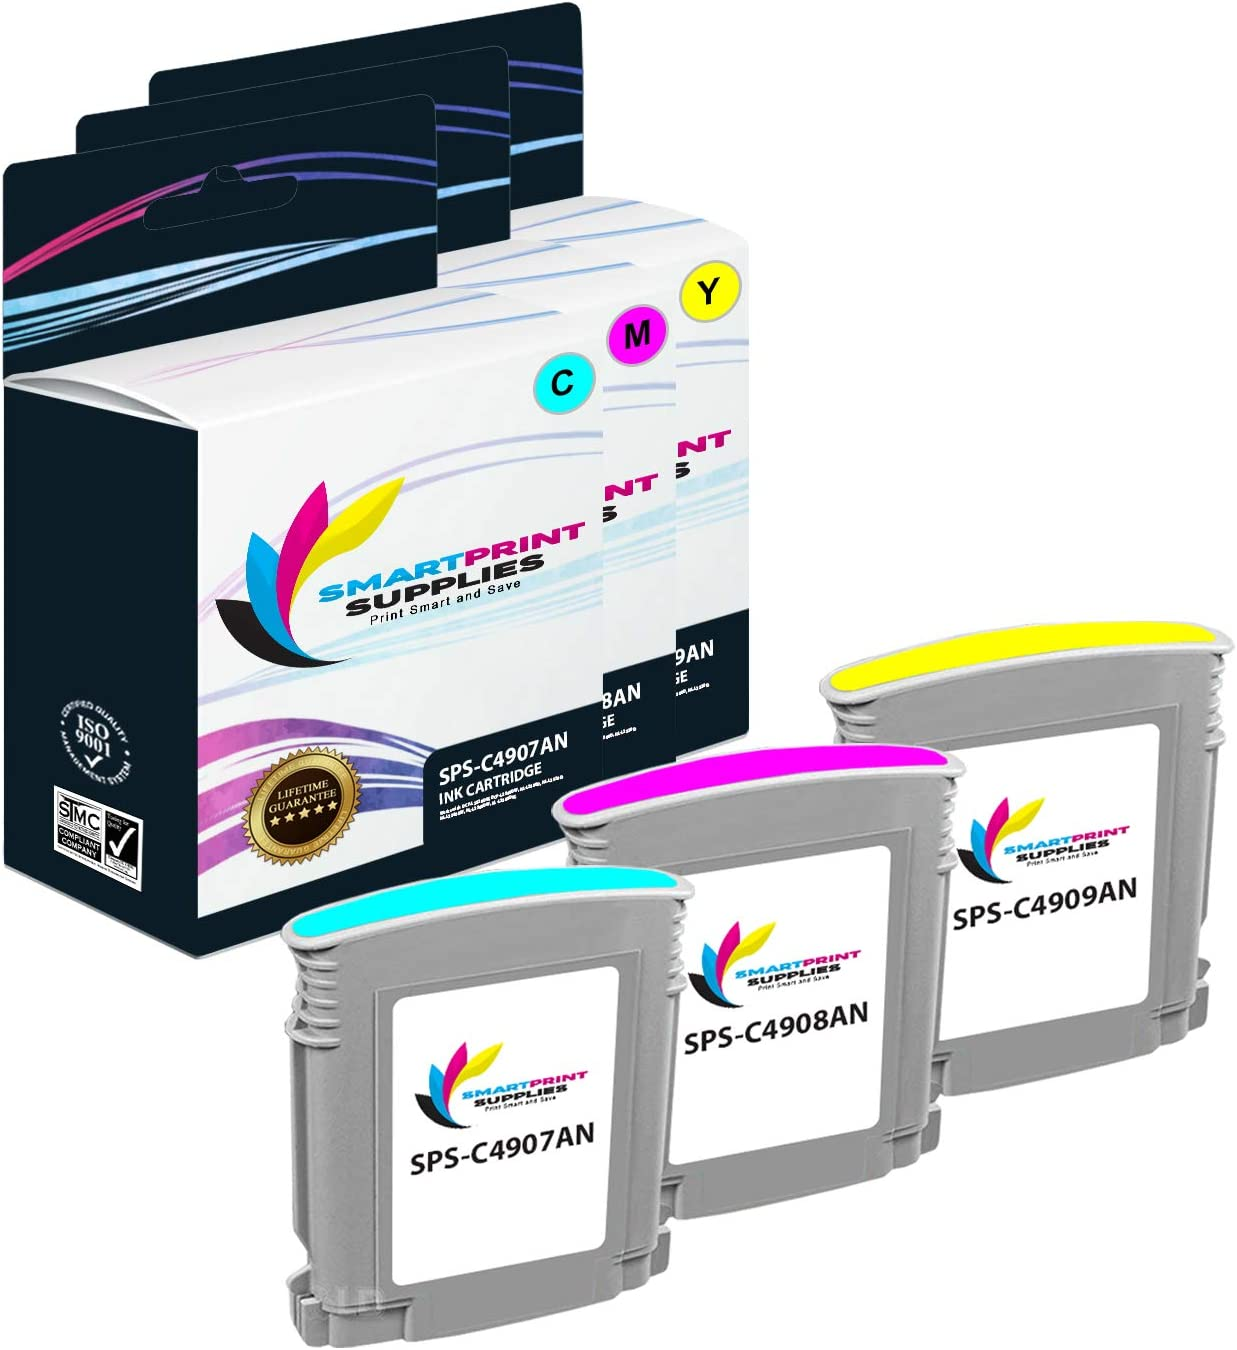 Smart Print Supplies Compatible 940XL 940 XL High Yield Ink Cartridge Replacement for HP OfficeJet Pro 8500 8500a Printers Cyan, Magenta, Yellow 3 Pack